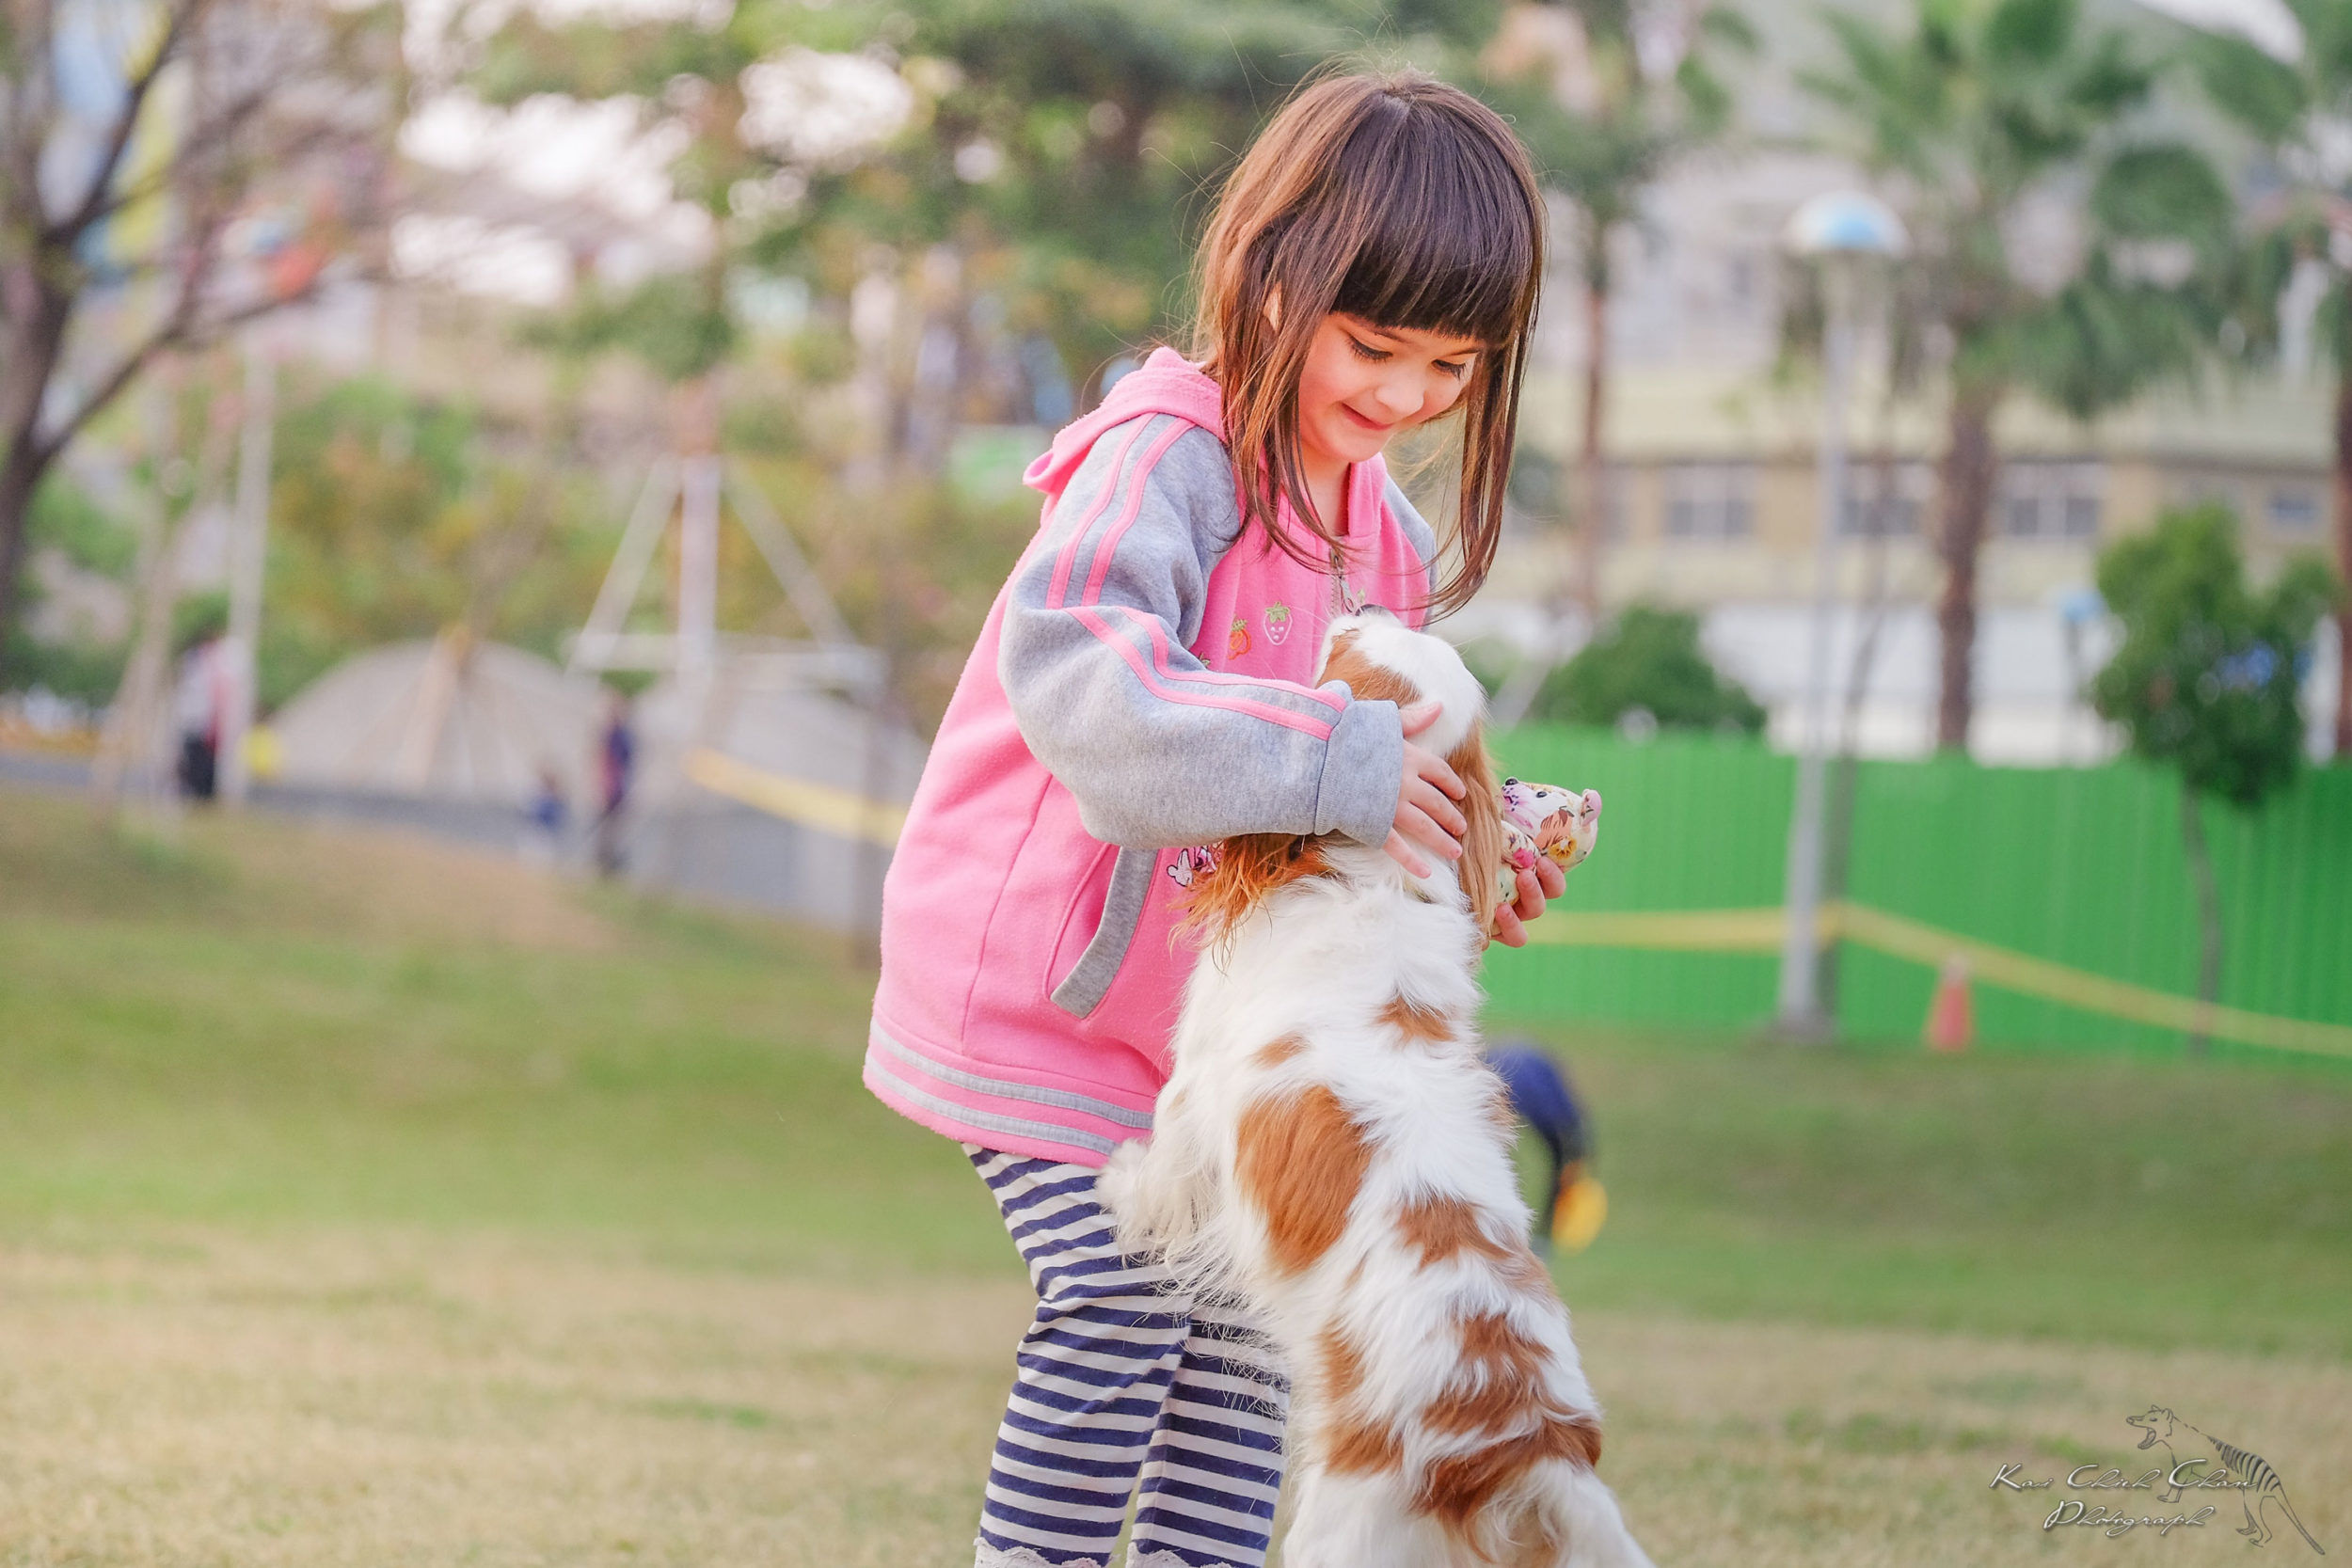 Pet owners having fun with their dogs in dog parks